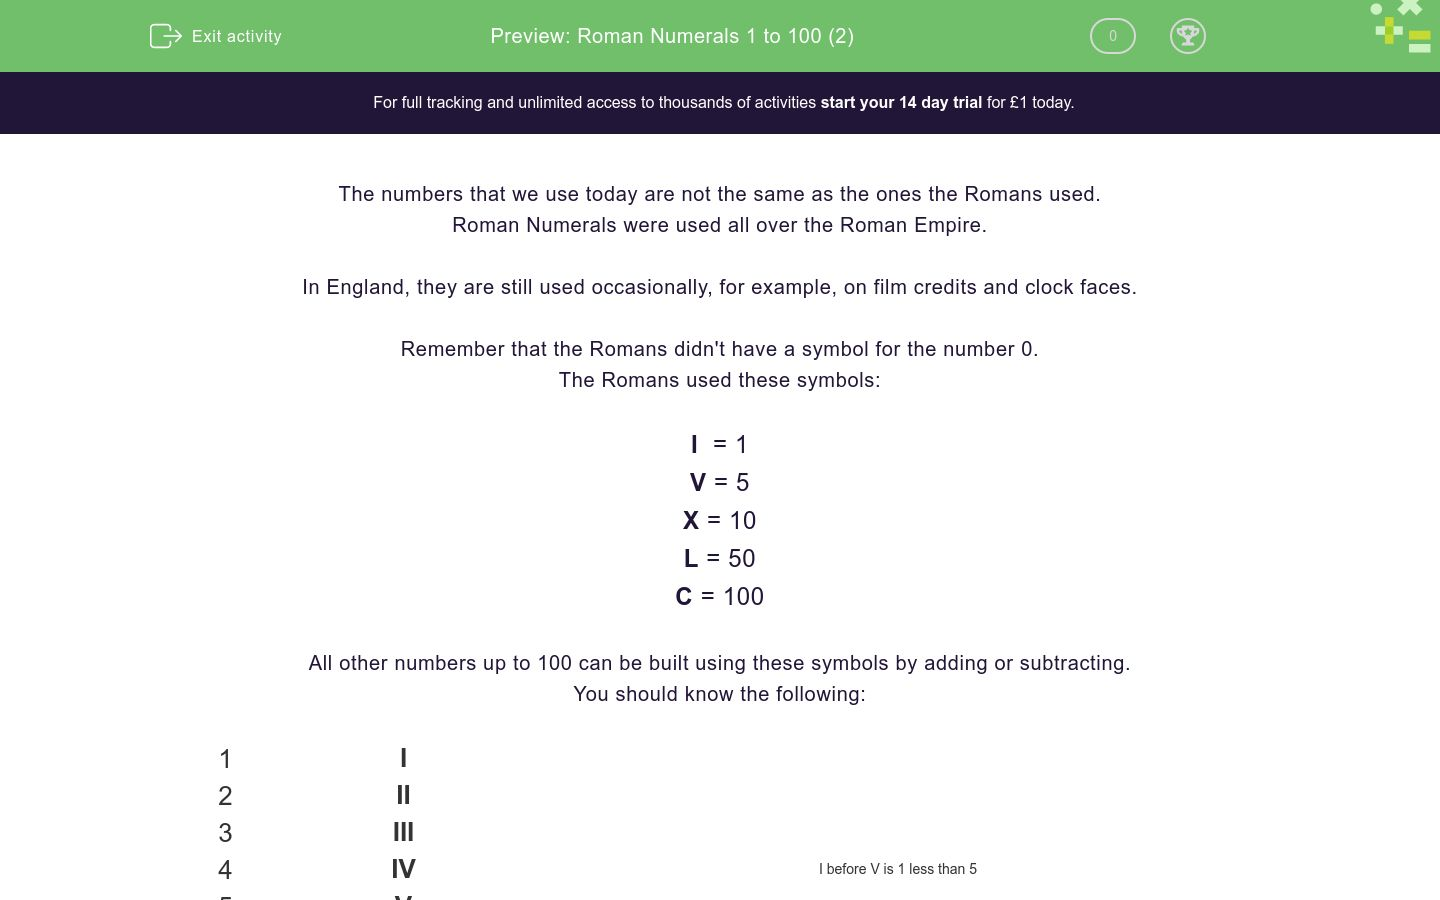 'Roman Numerals 1 to 100 (2)' worksheet